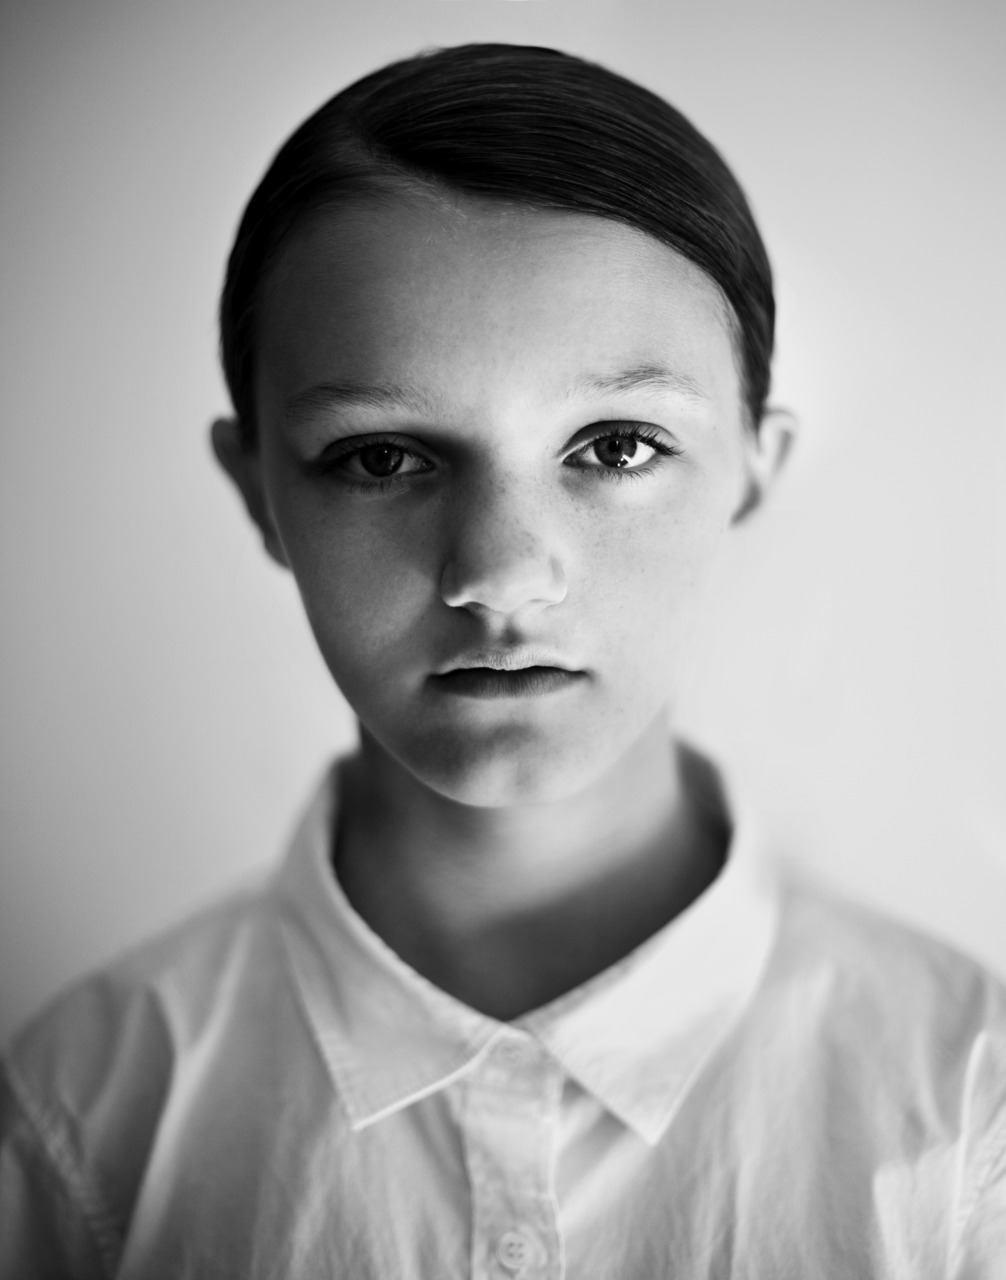 davidurbanke:  12 year old Peyton Knight by David Urbanke